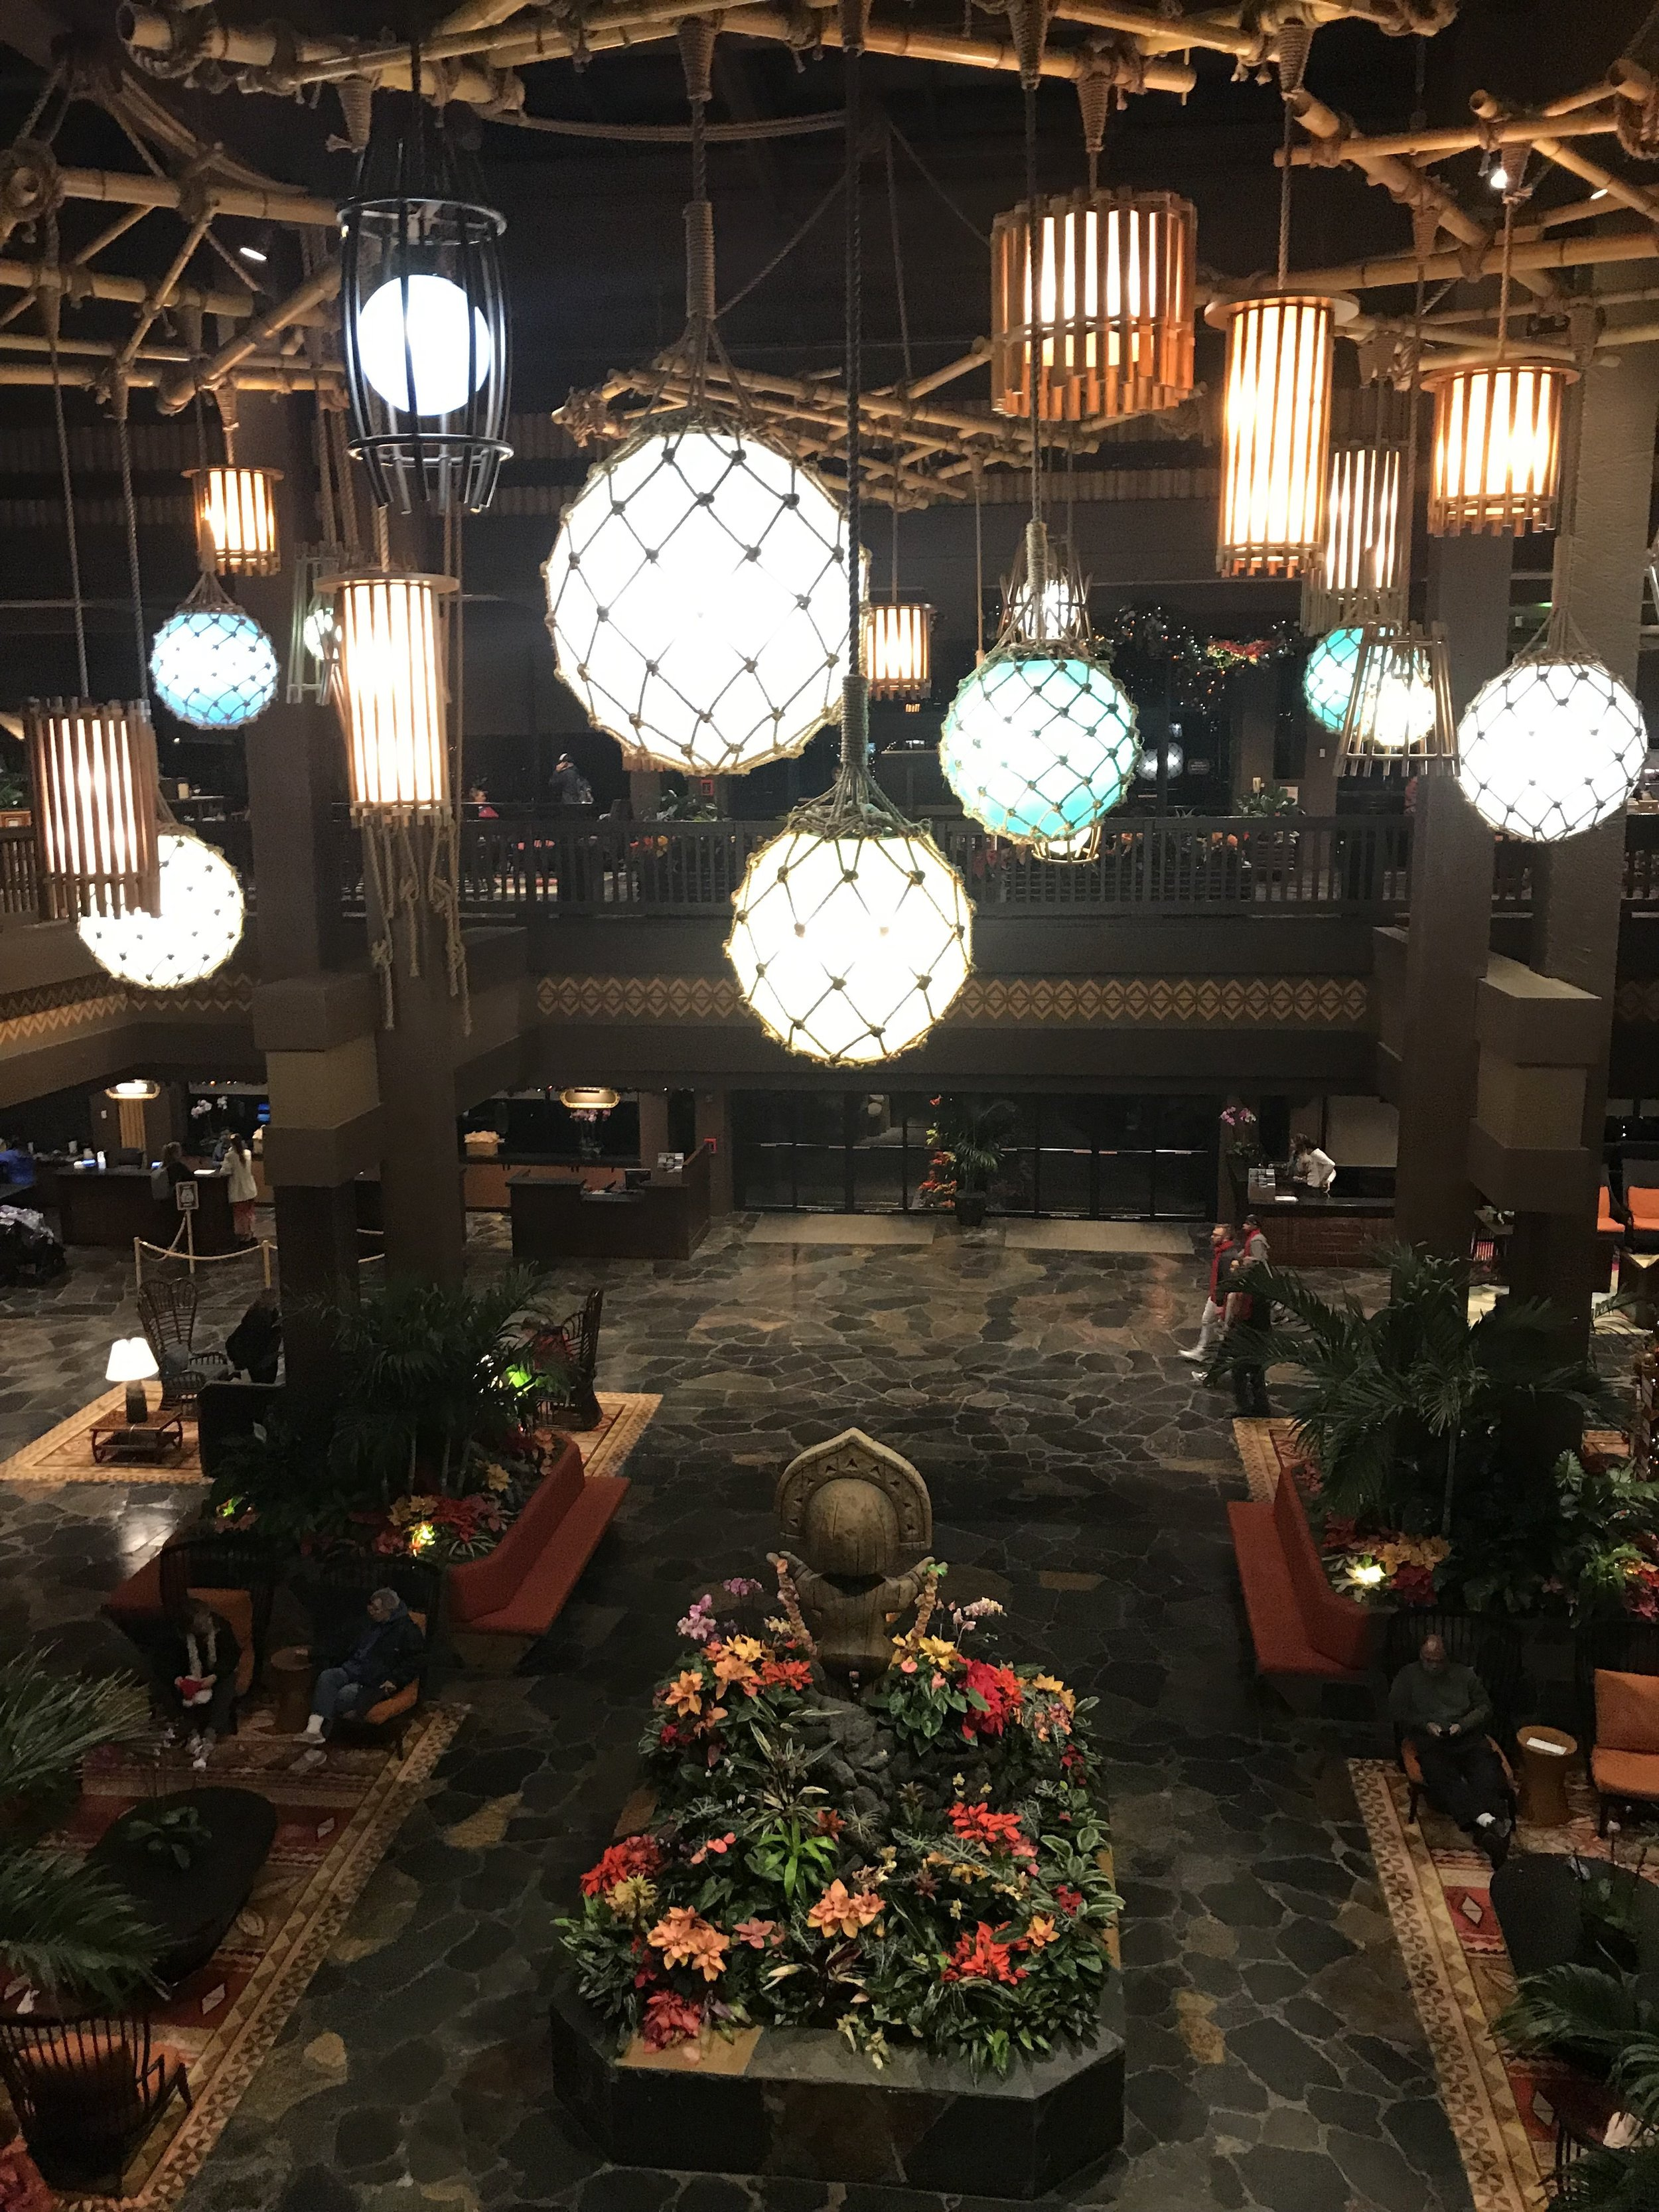 A picture of our hotel lobby - definitely a gorgeous place!